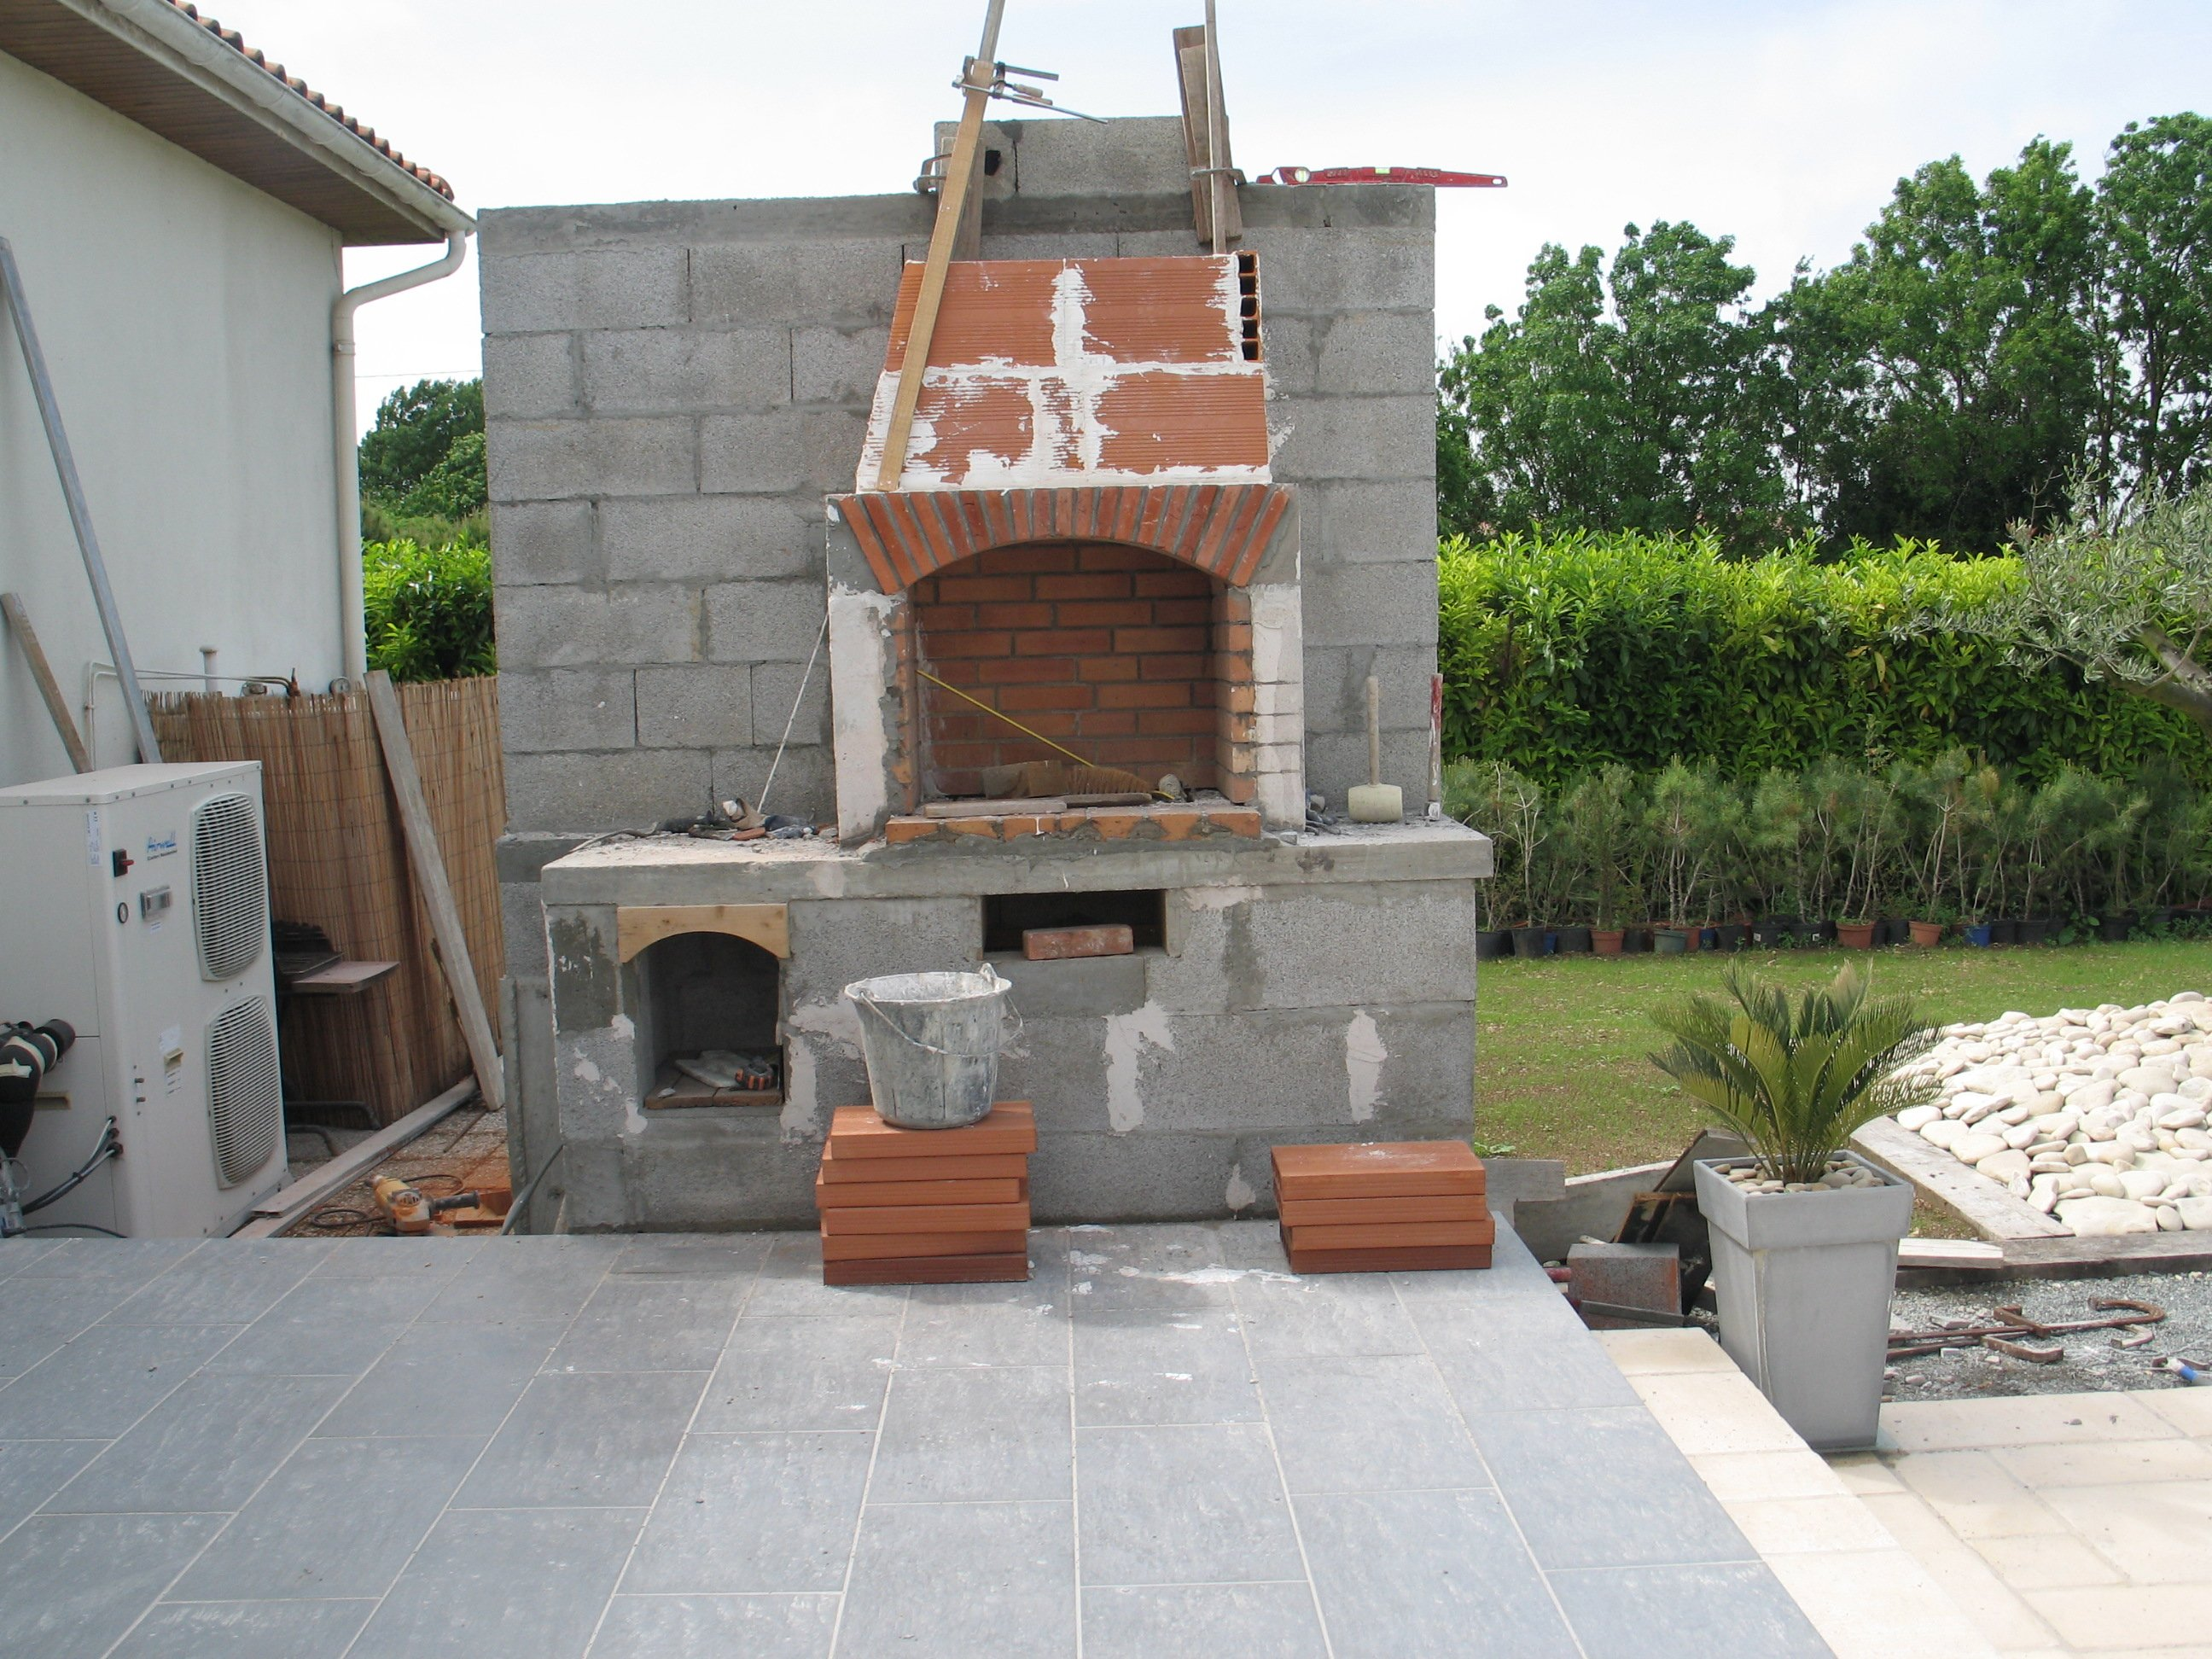 Construire son barbecue archives du blog l avaloir for Fabrication barbecue exterieur